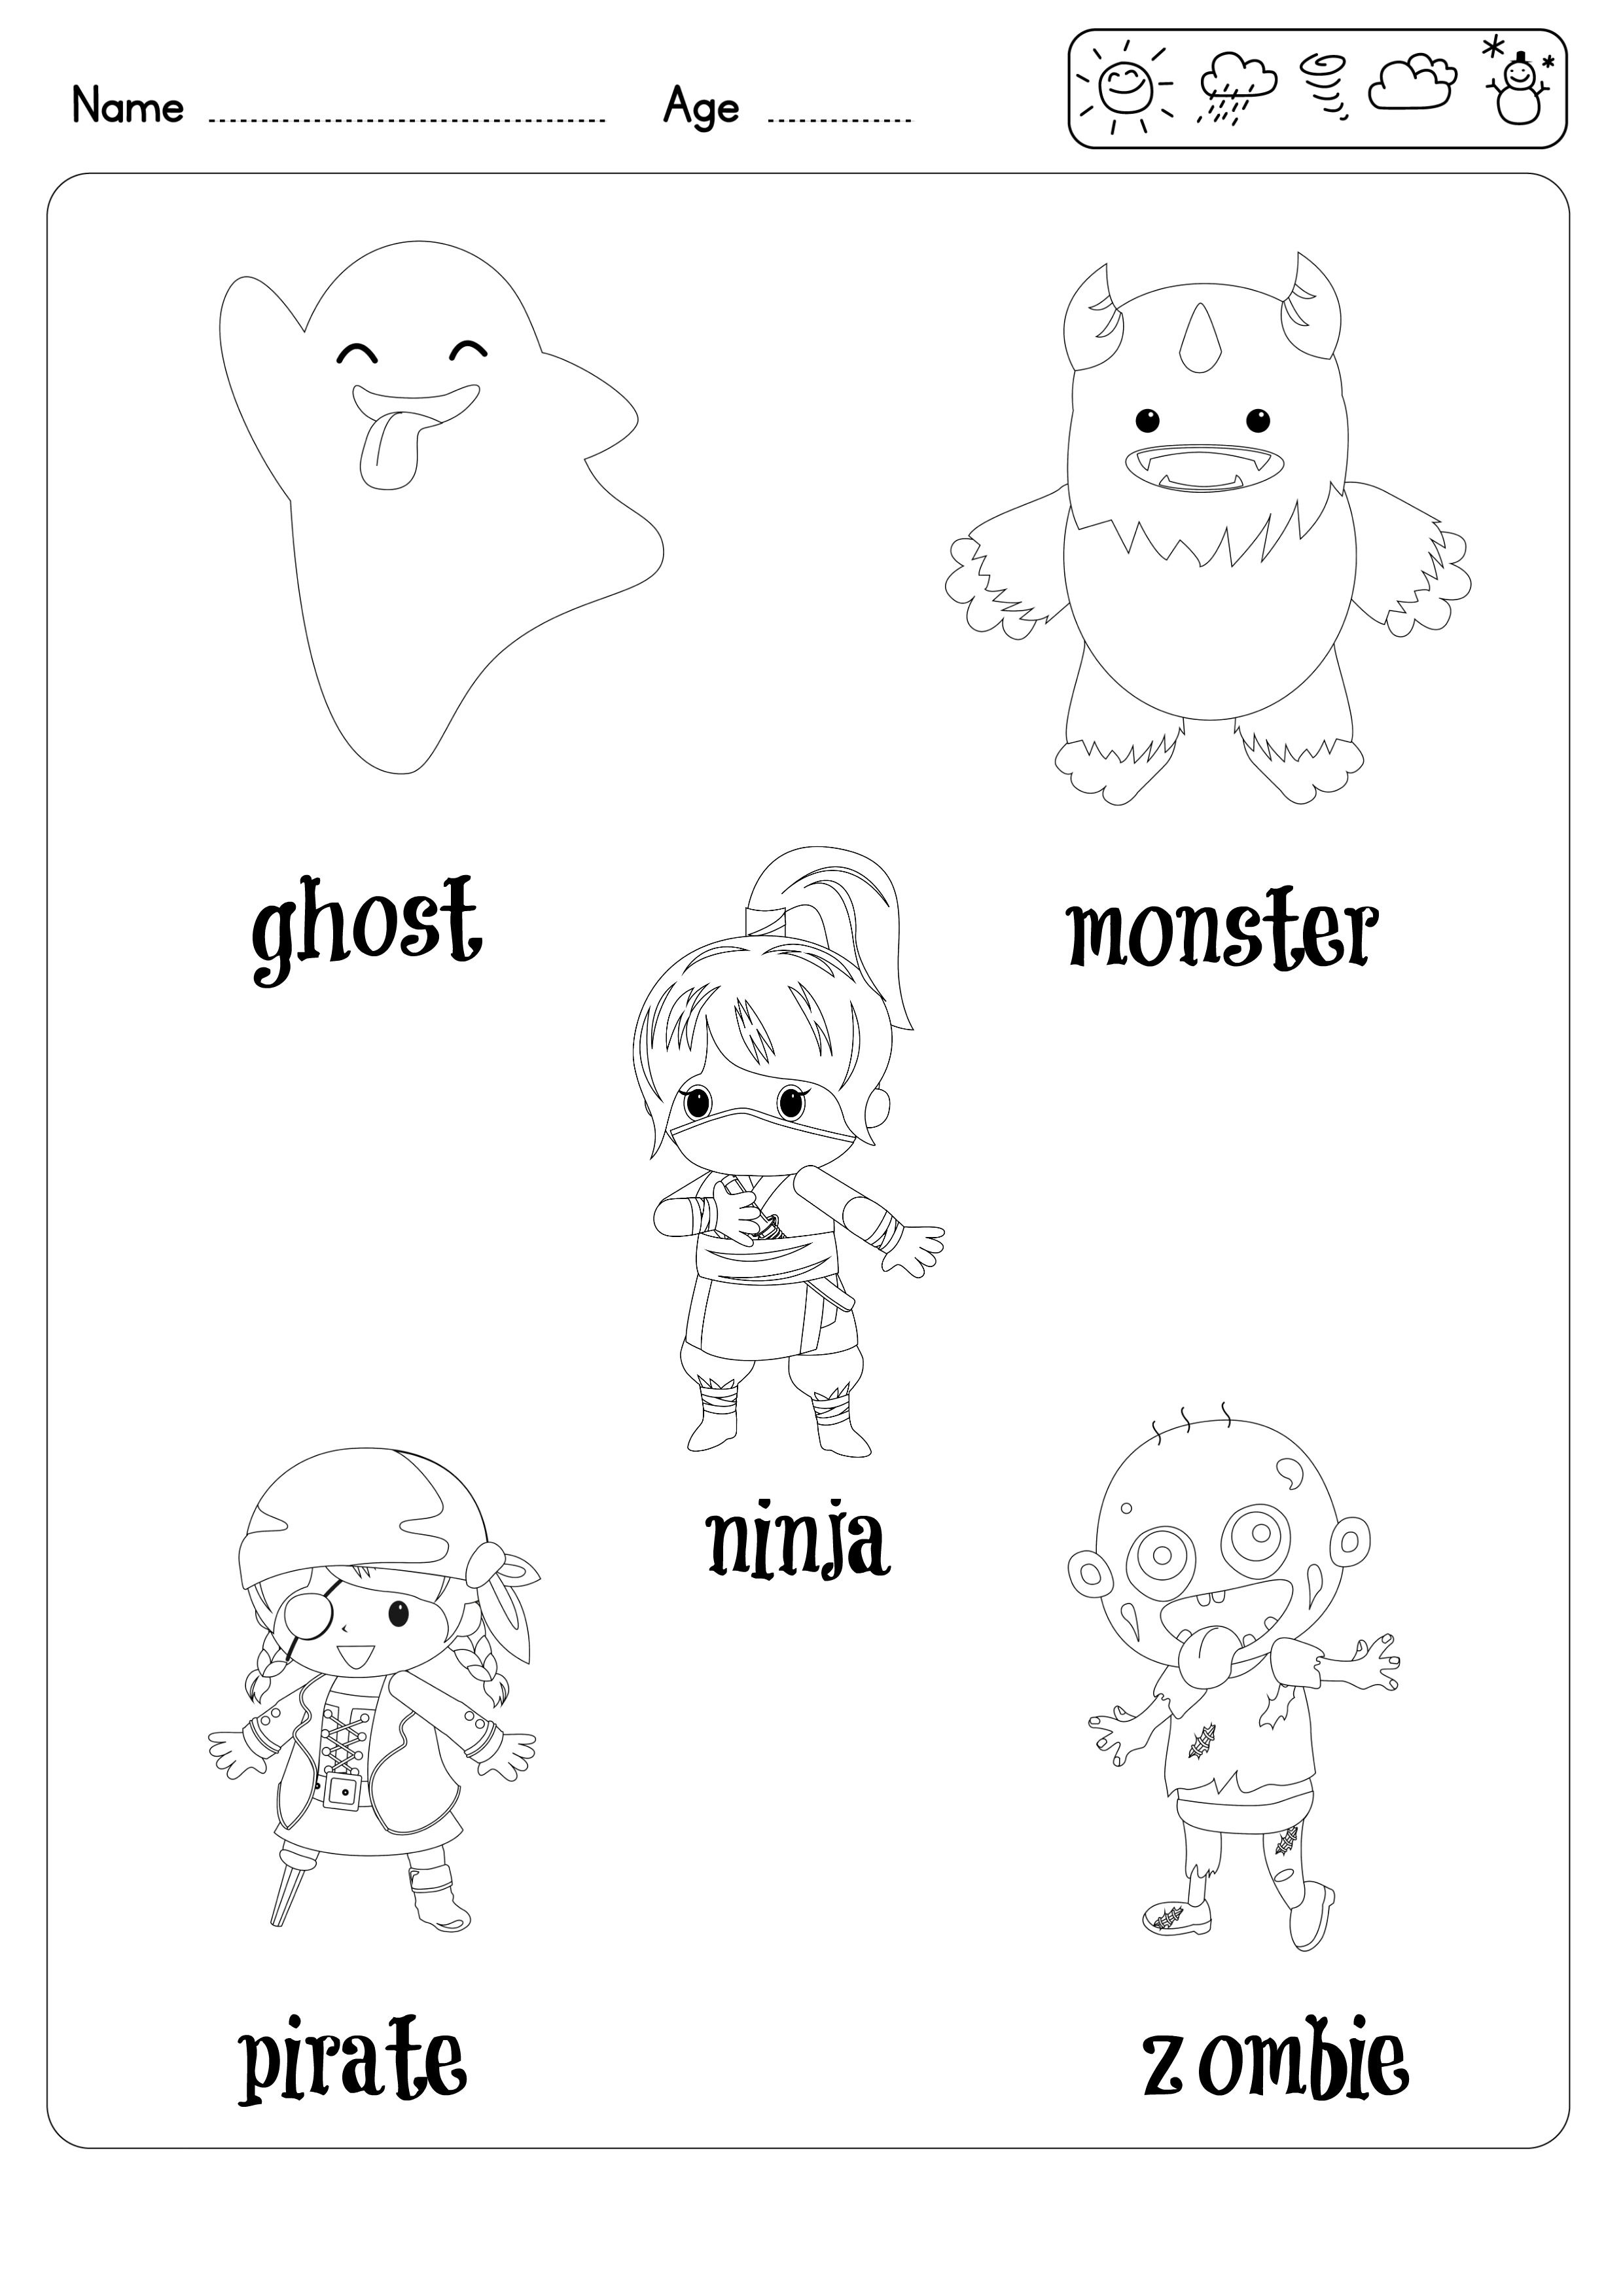 20 Coloring pages 20 Flashcards 4 Activity sheets for preschool